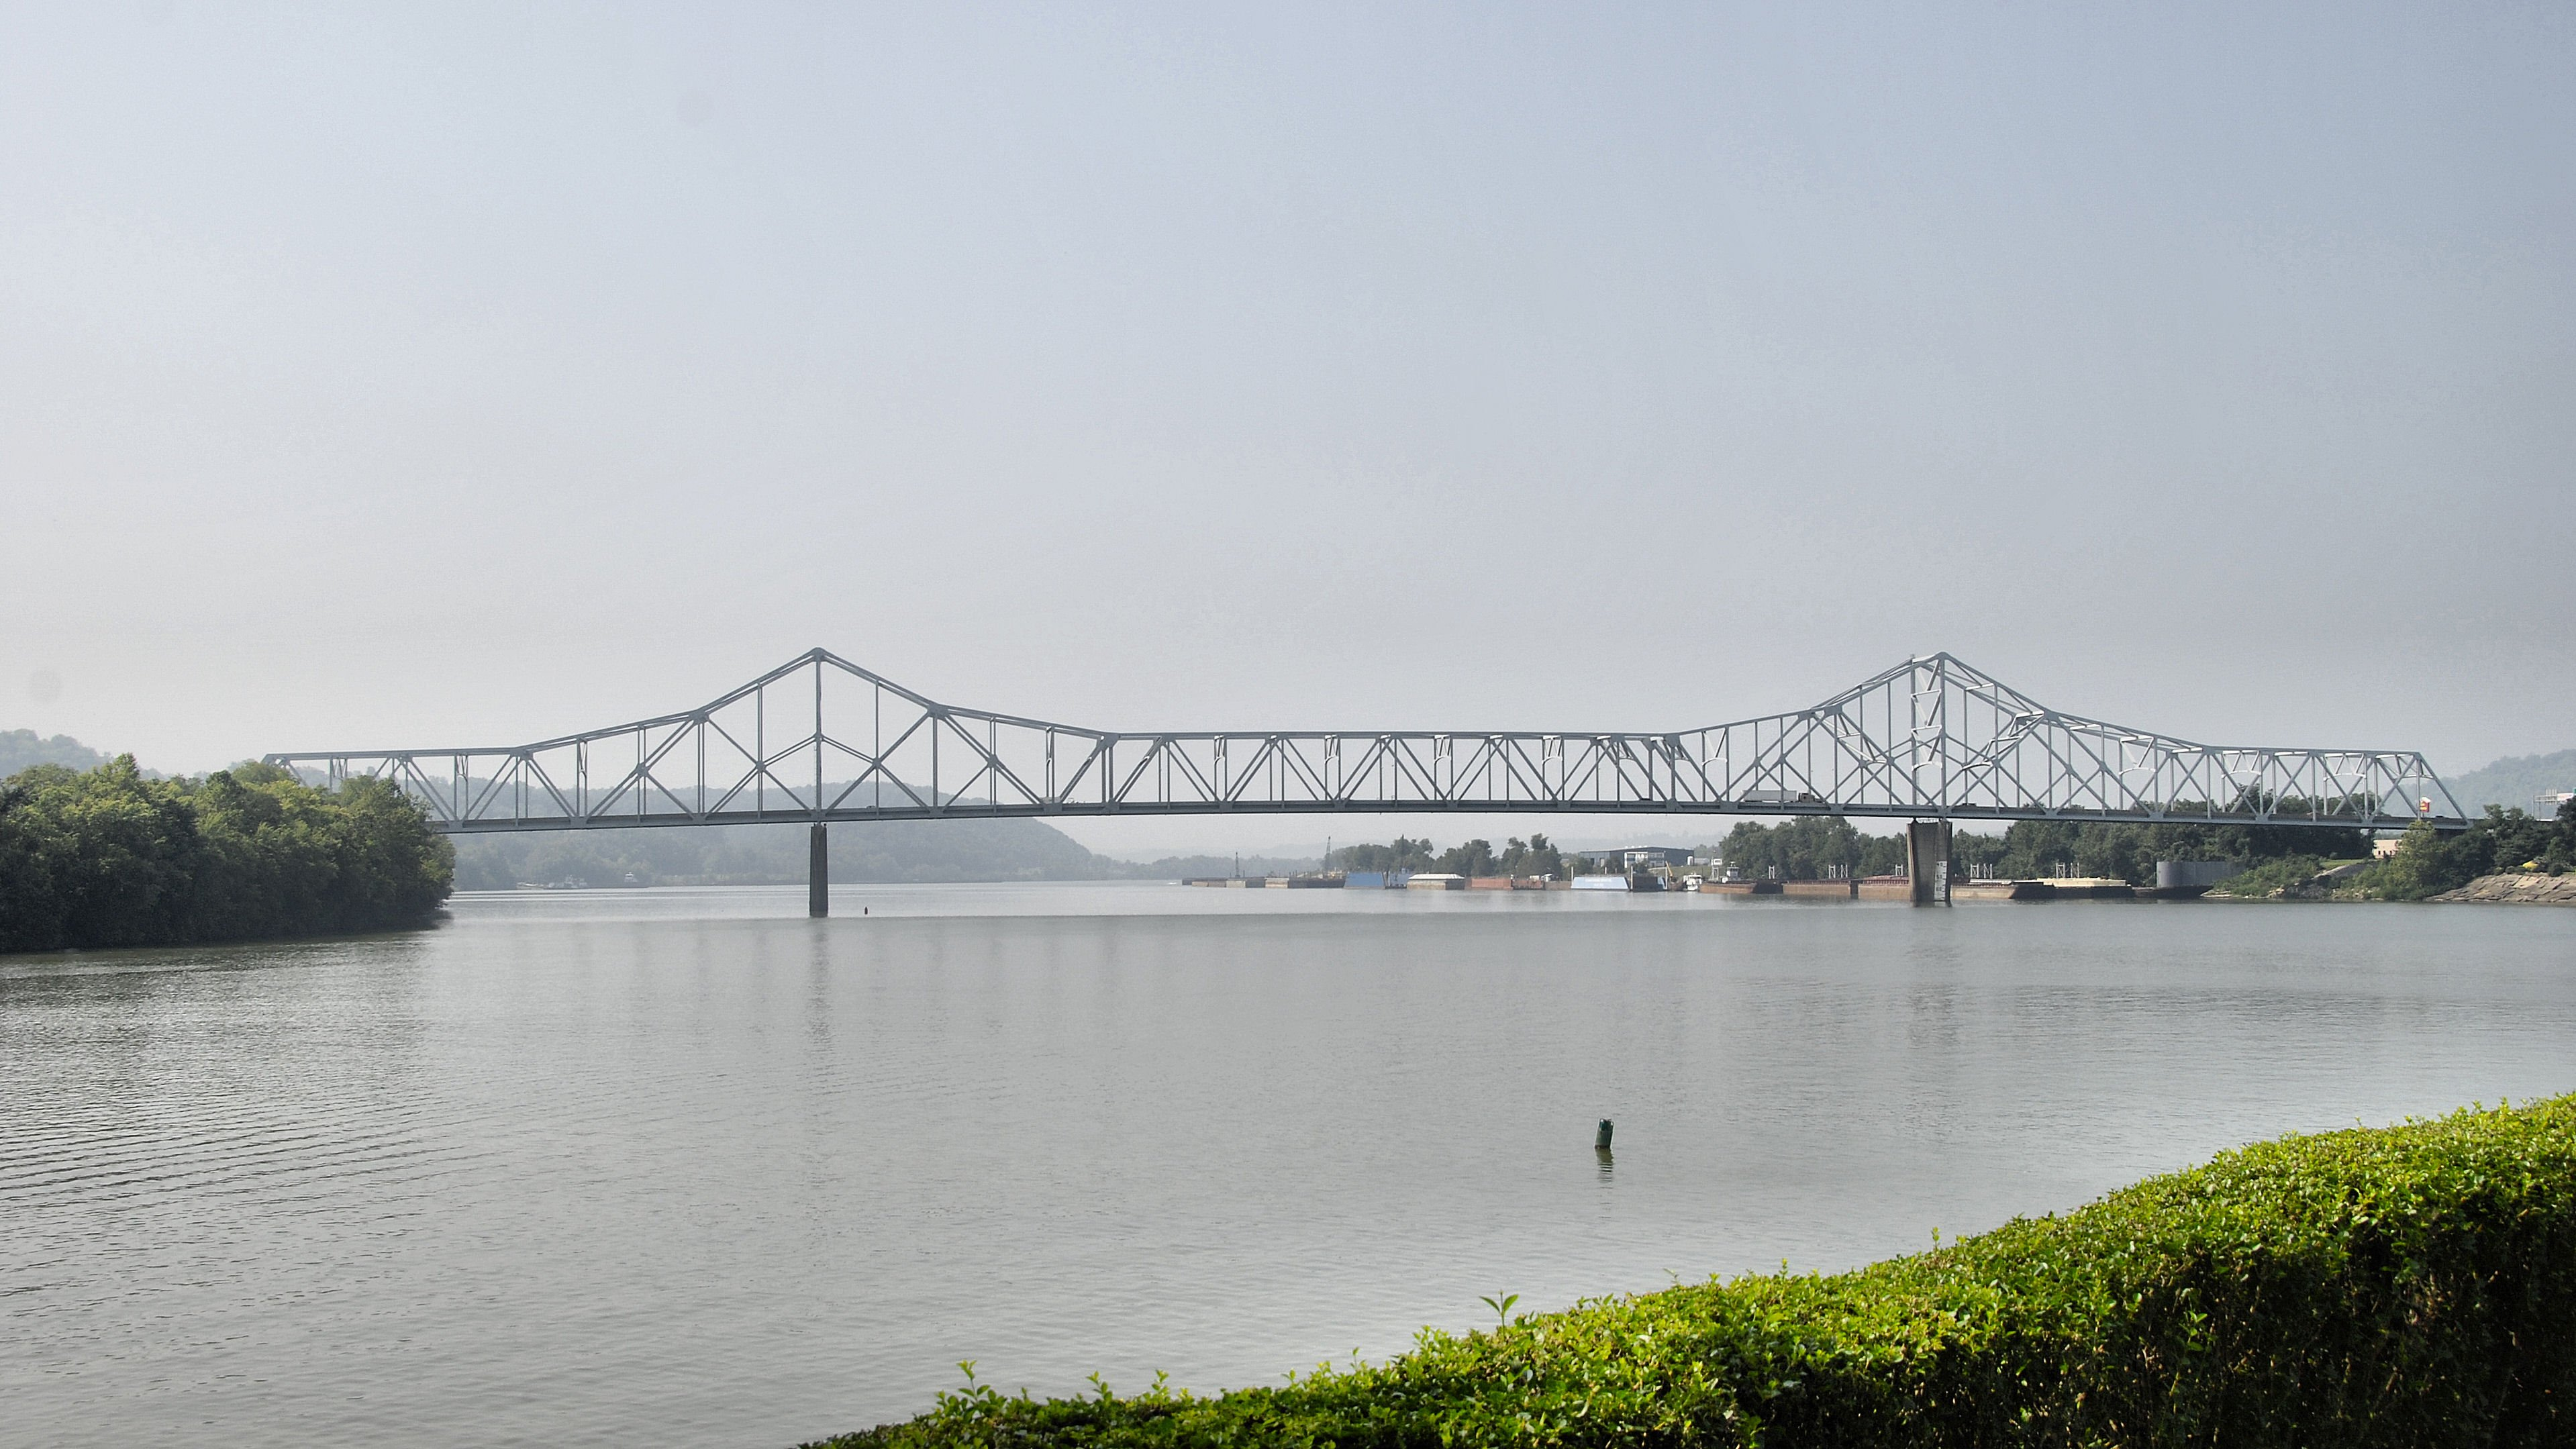 The Silver Memorial Bridge was built as a replacement in 1969.